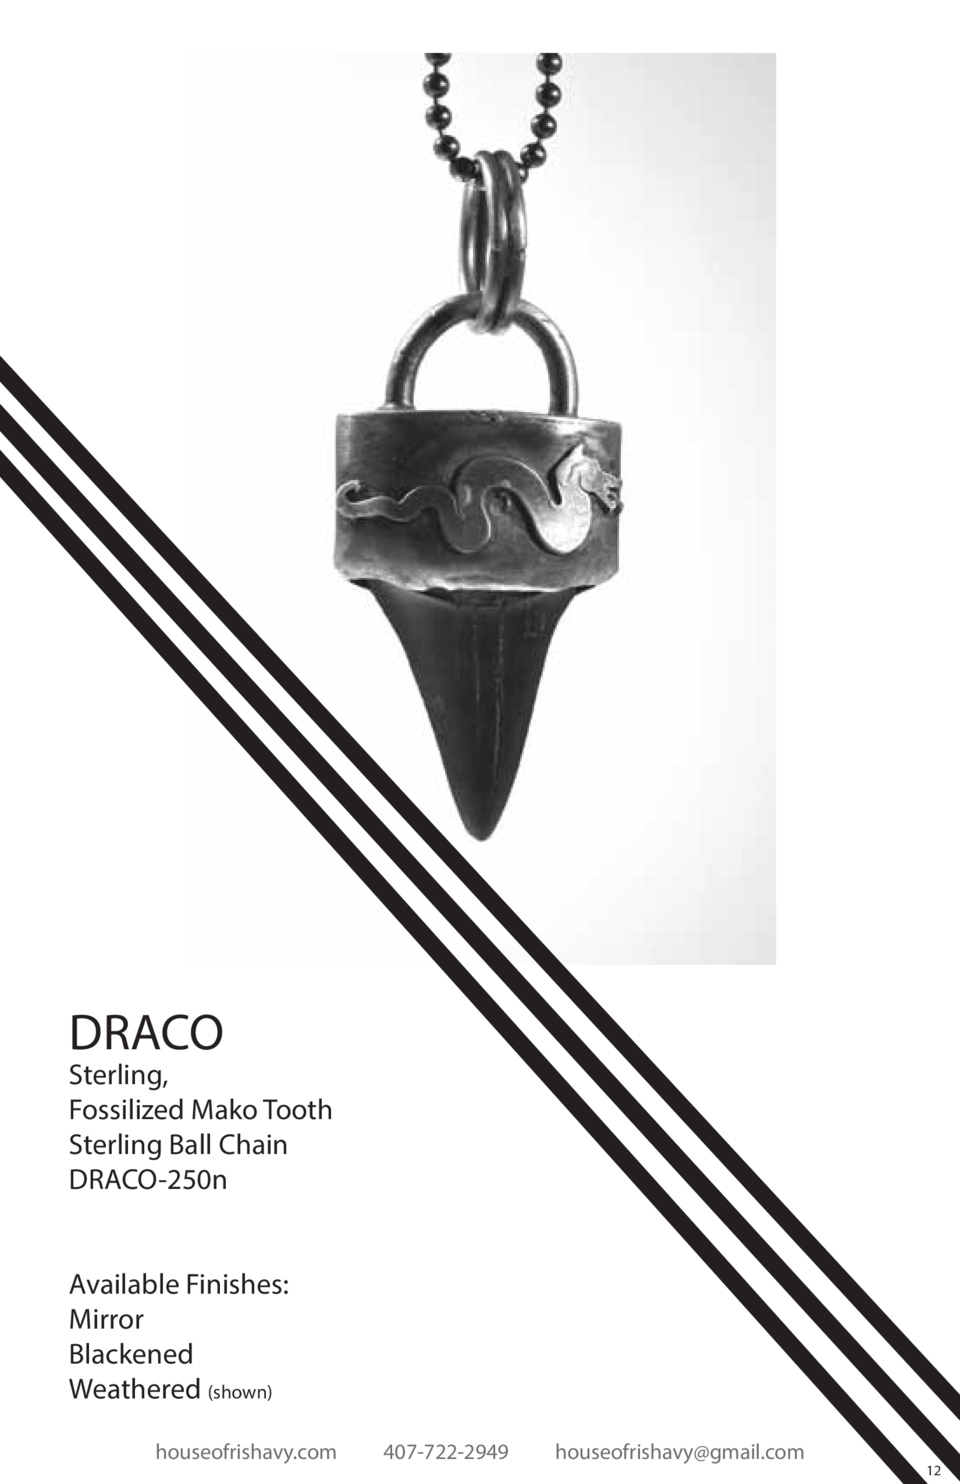 DRACO  Sterling, Fossilized Mako Tooth Sterling Ball Chain DRACO-250n Available Finishes  Mirror Blackened Weathered  show...